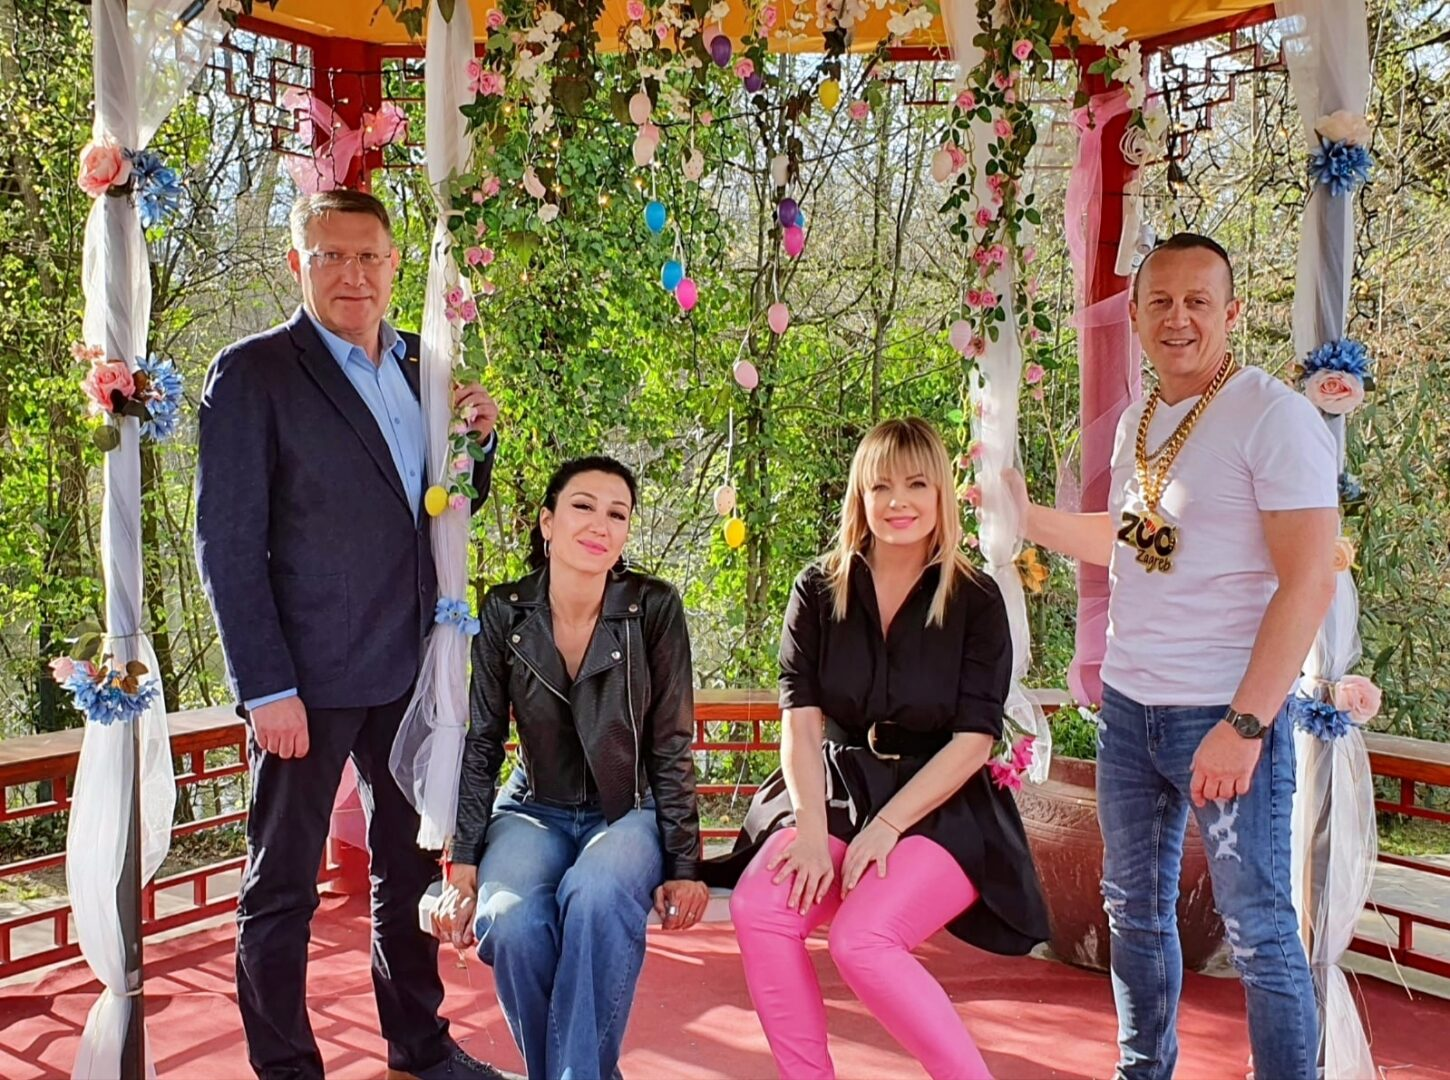 VIDEO: Zagreb Zoo gets its own anthem 'Zoo Song'